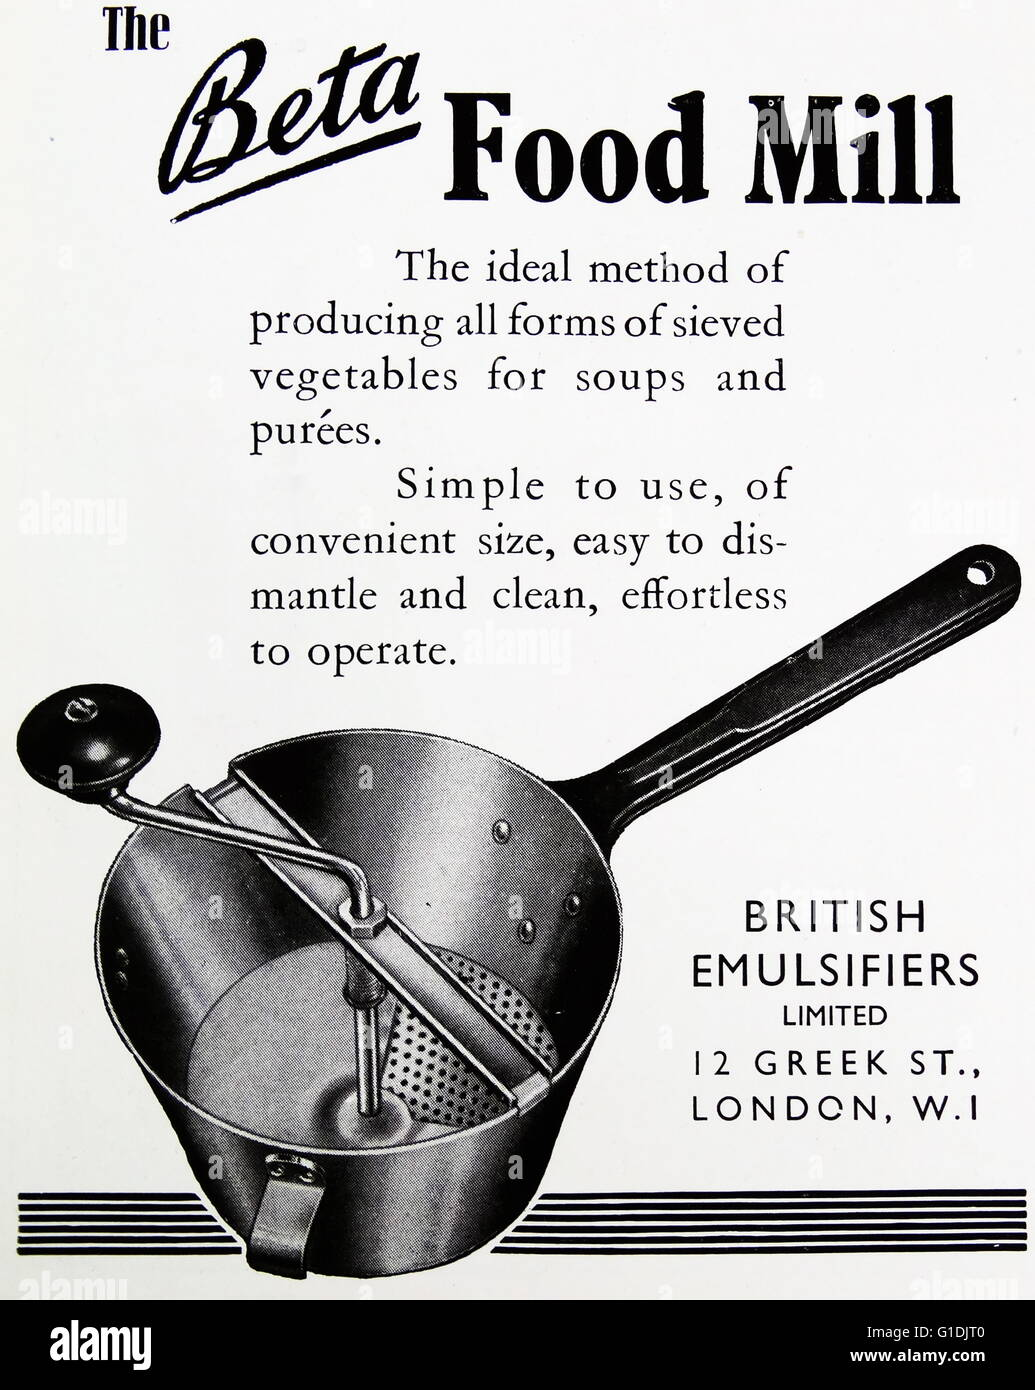 Advert for the British Emulsifiers Ltd. Cookware Products - Stock Image